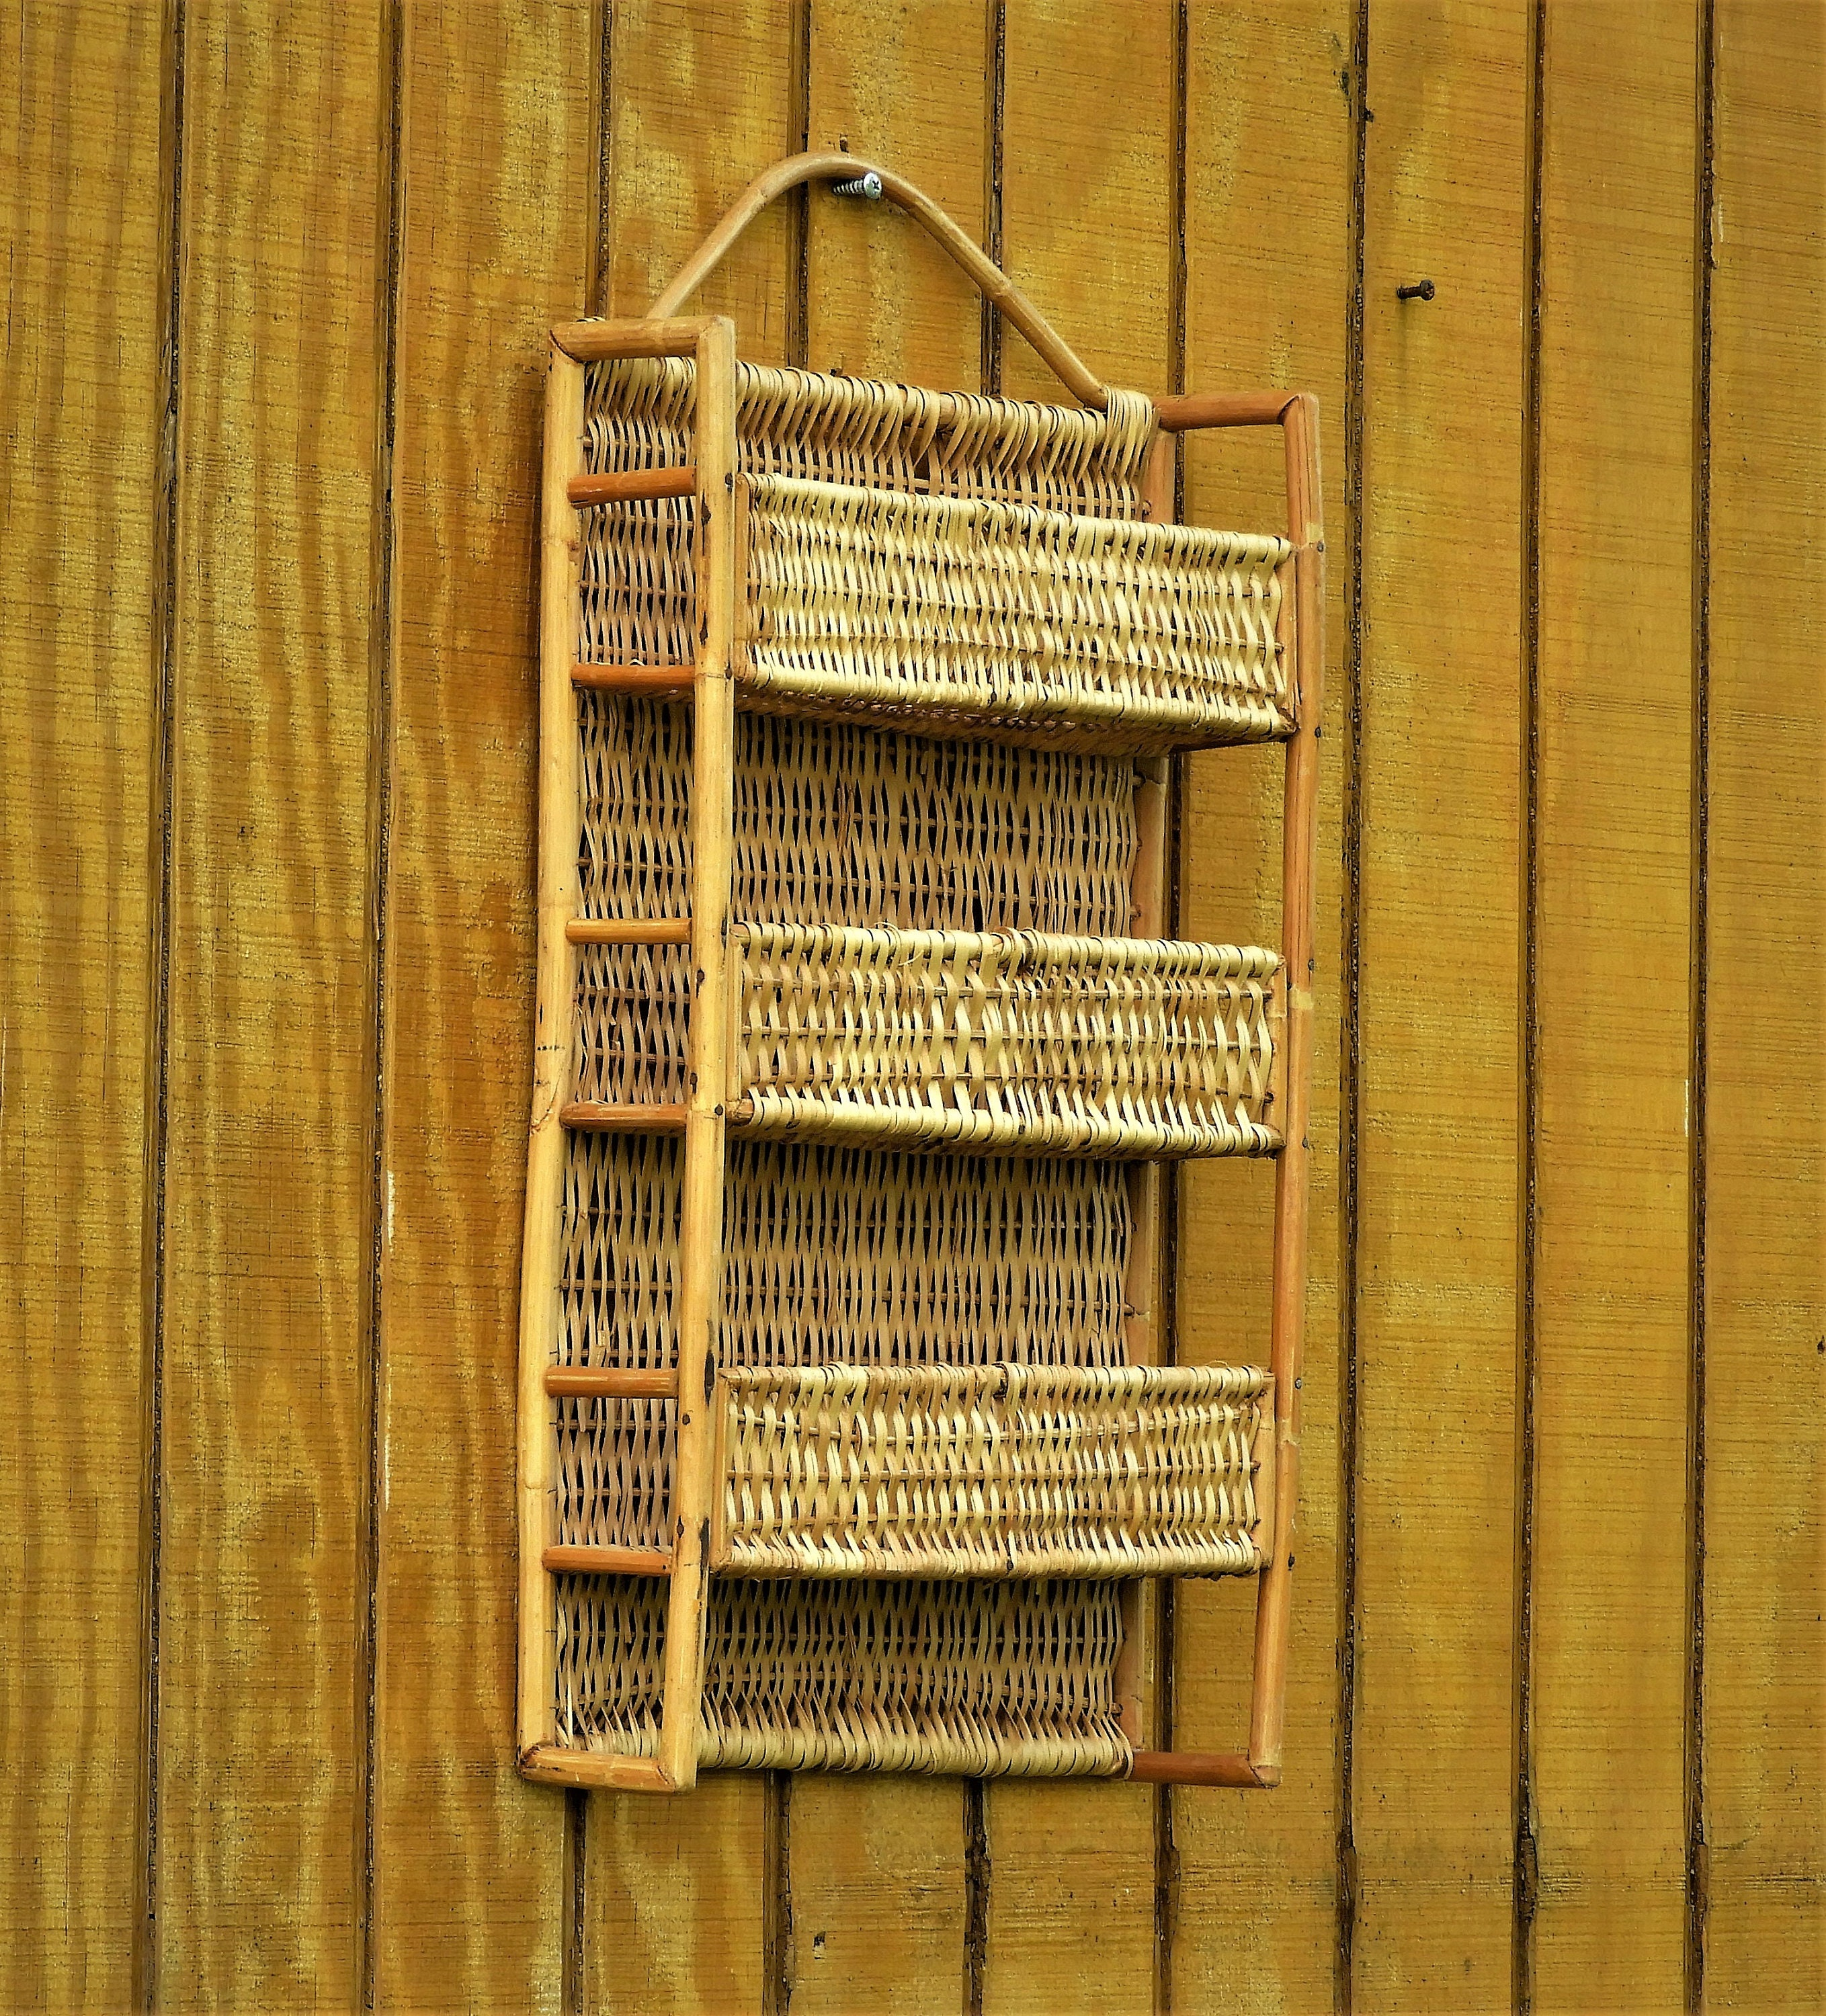 Vintage Rattan Shelf, Gold Brown Woven Wall Decor, Three Tier Wall ...